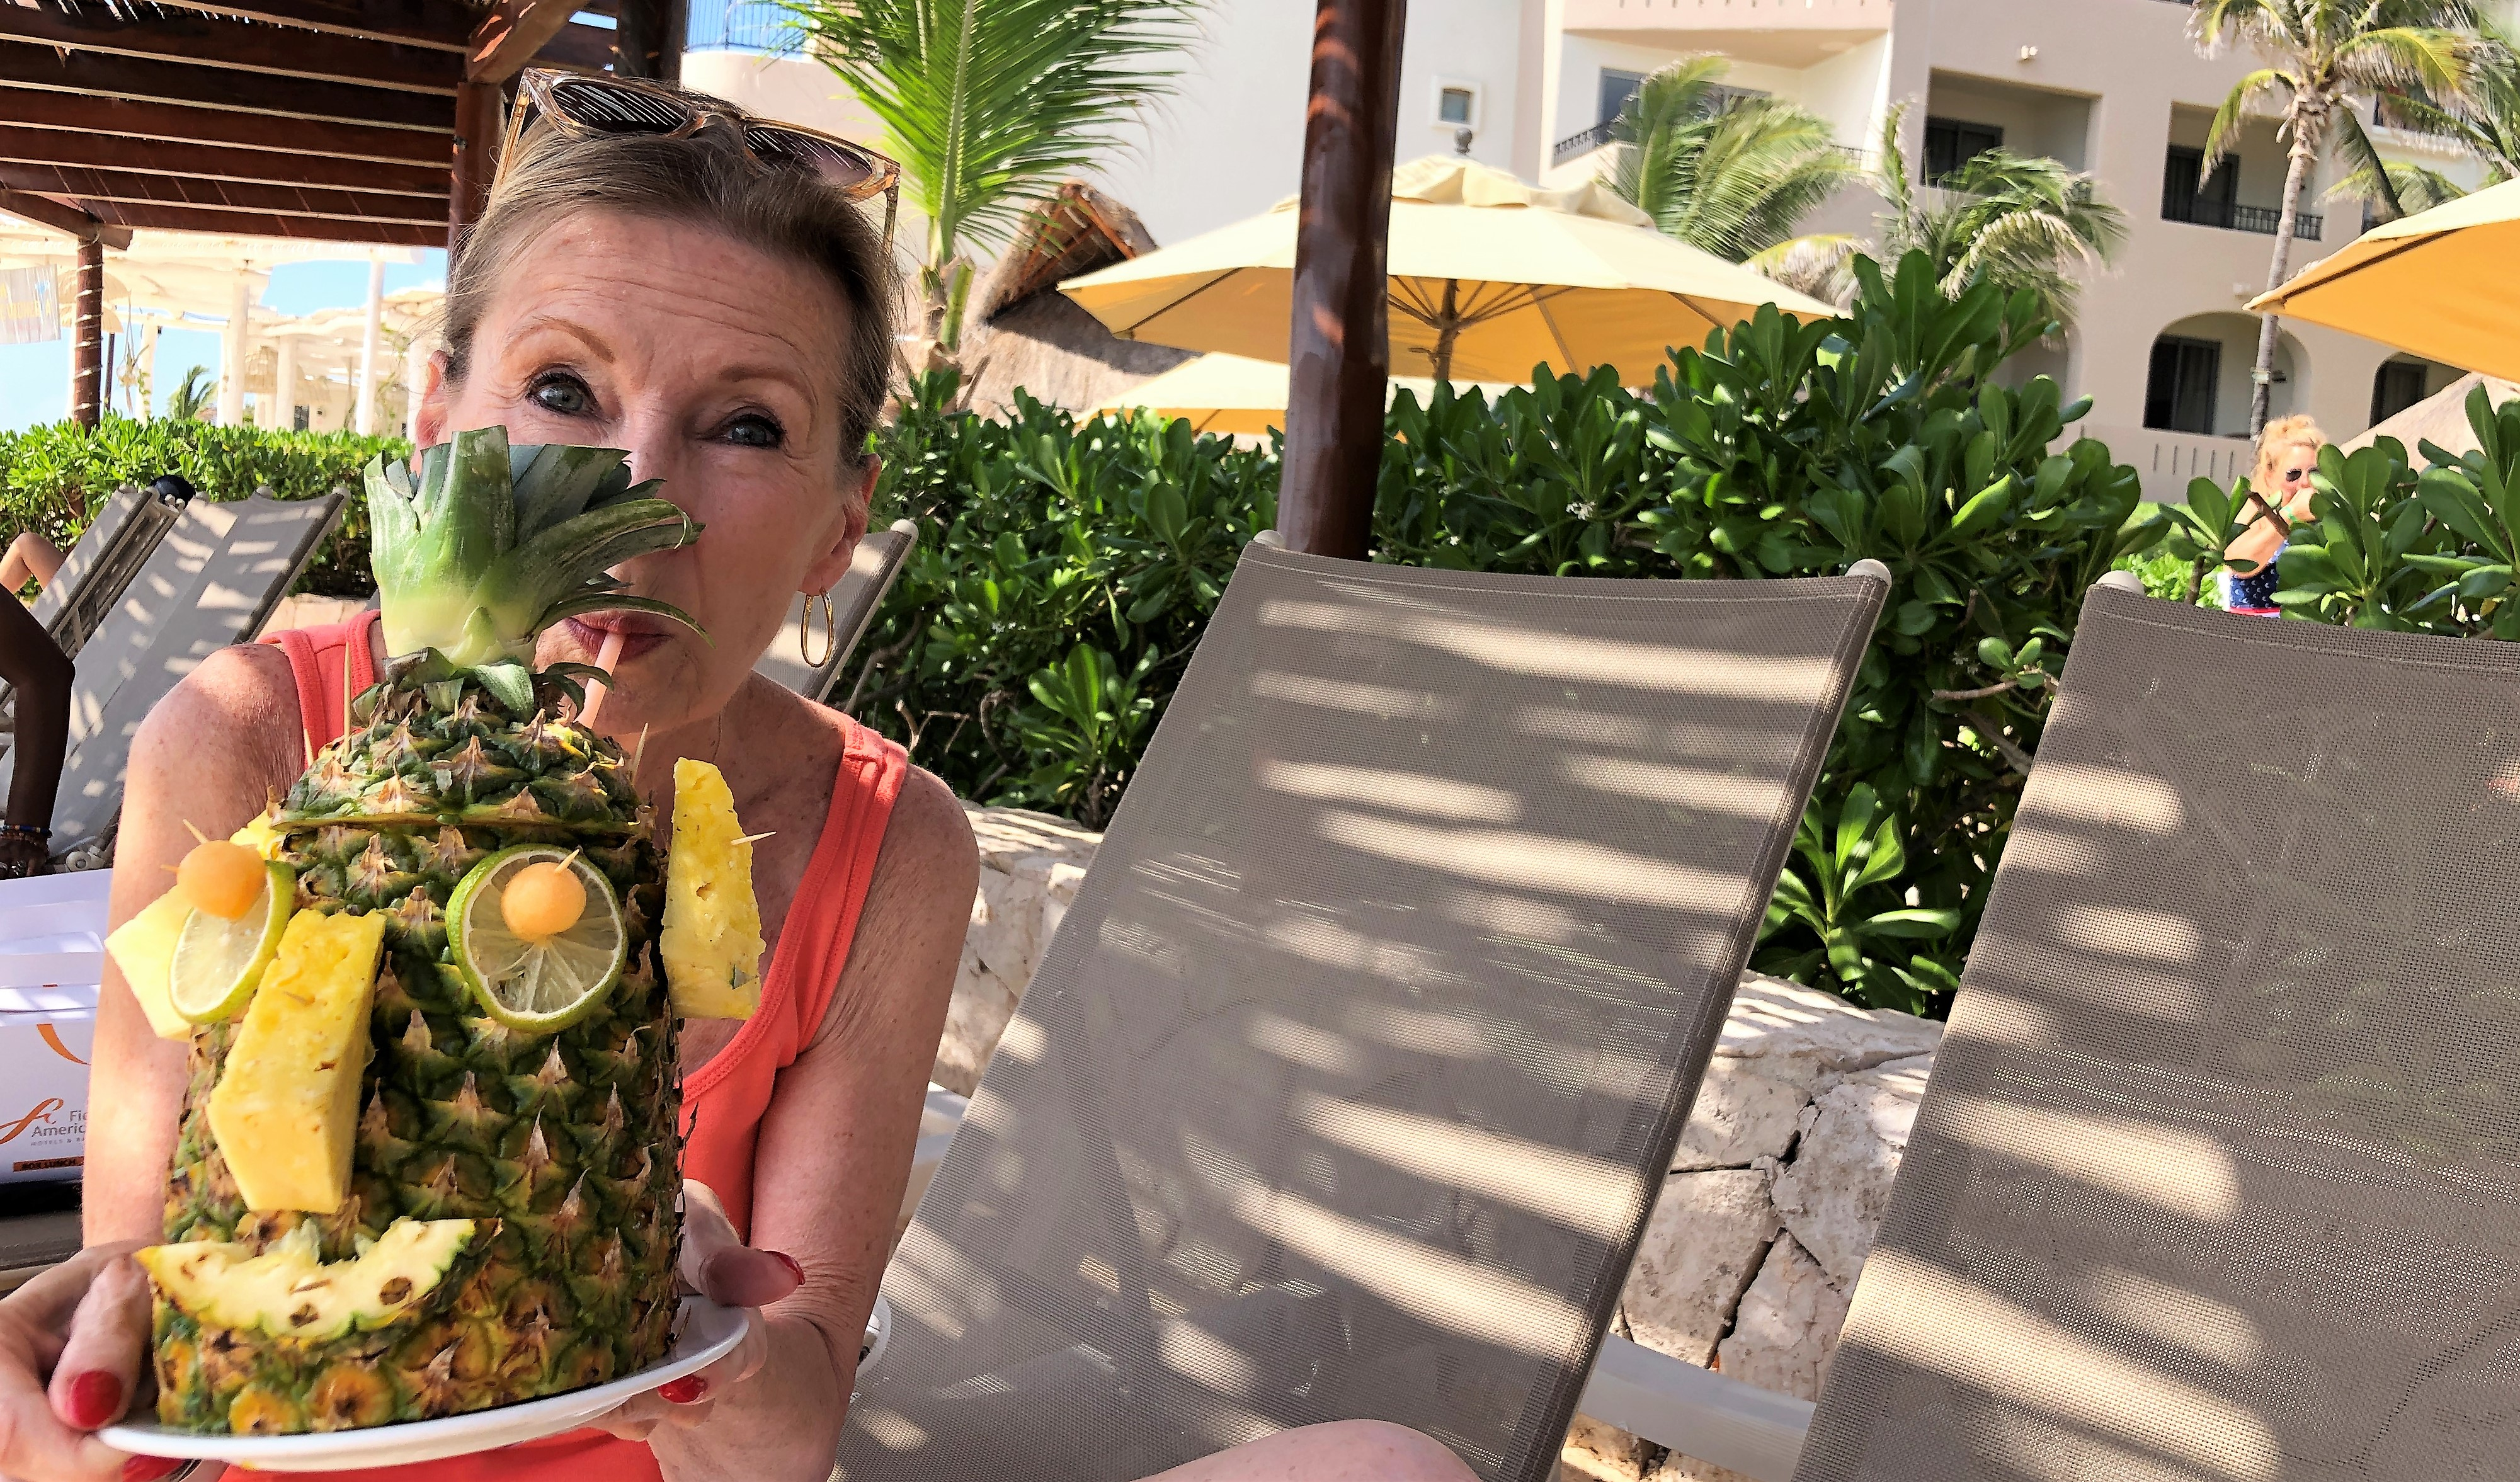 How to Carve and Decorate a Pineapple in Cancun